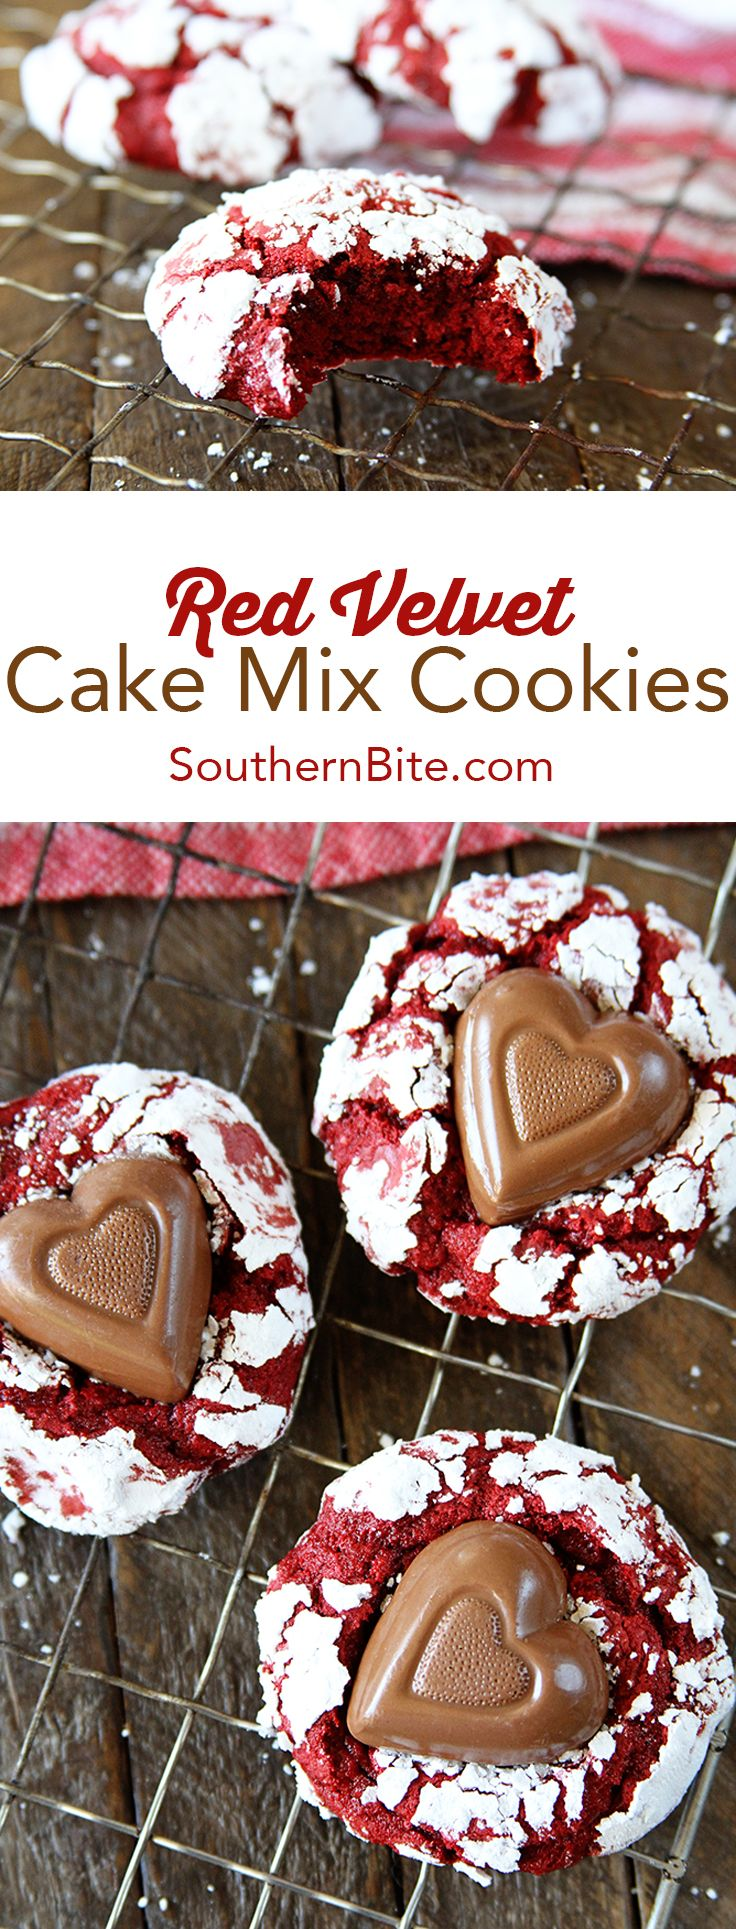 With only 4 ingredients, these Red Velvet Cake Mix Cookies are easier than you think. They're pillowy perfection!